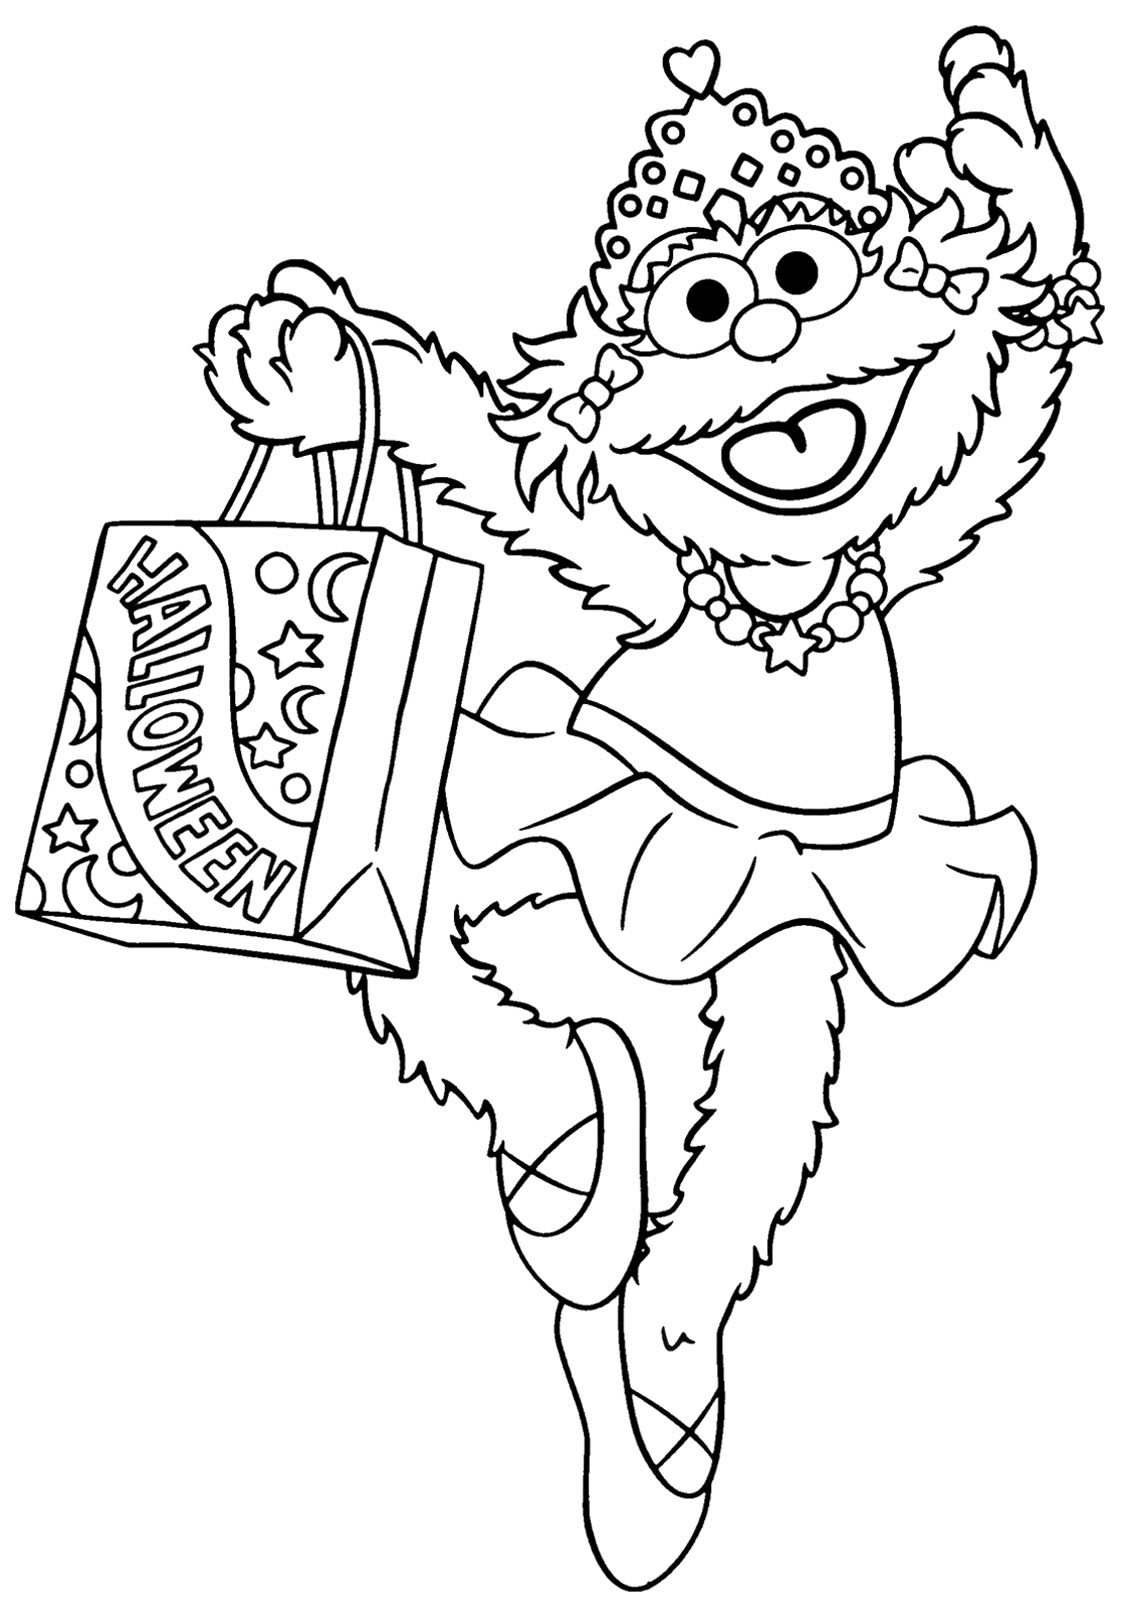 Sesame Street Sign Coloring Page Sesame Street To Print For Free Sesame Street Kids Coloring Pages